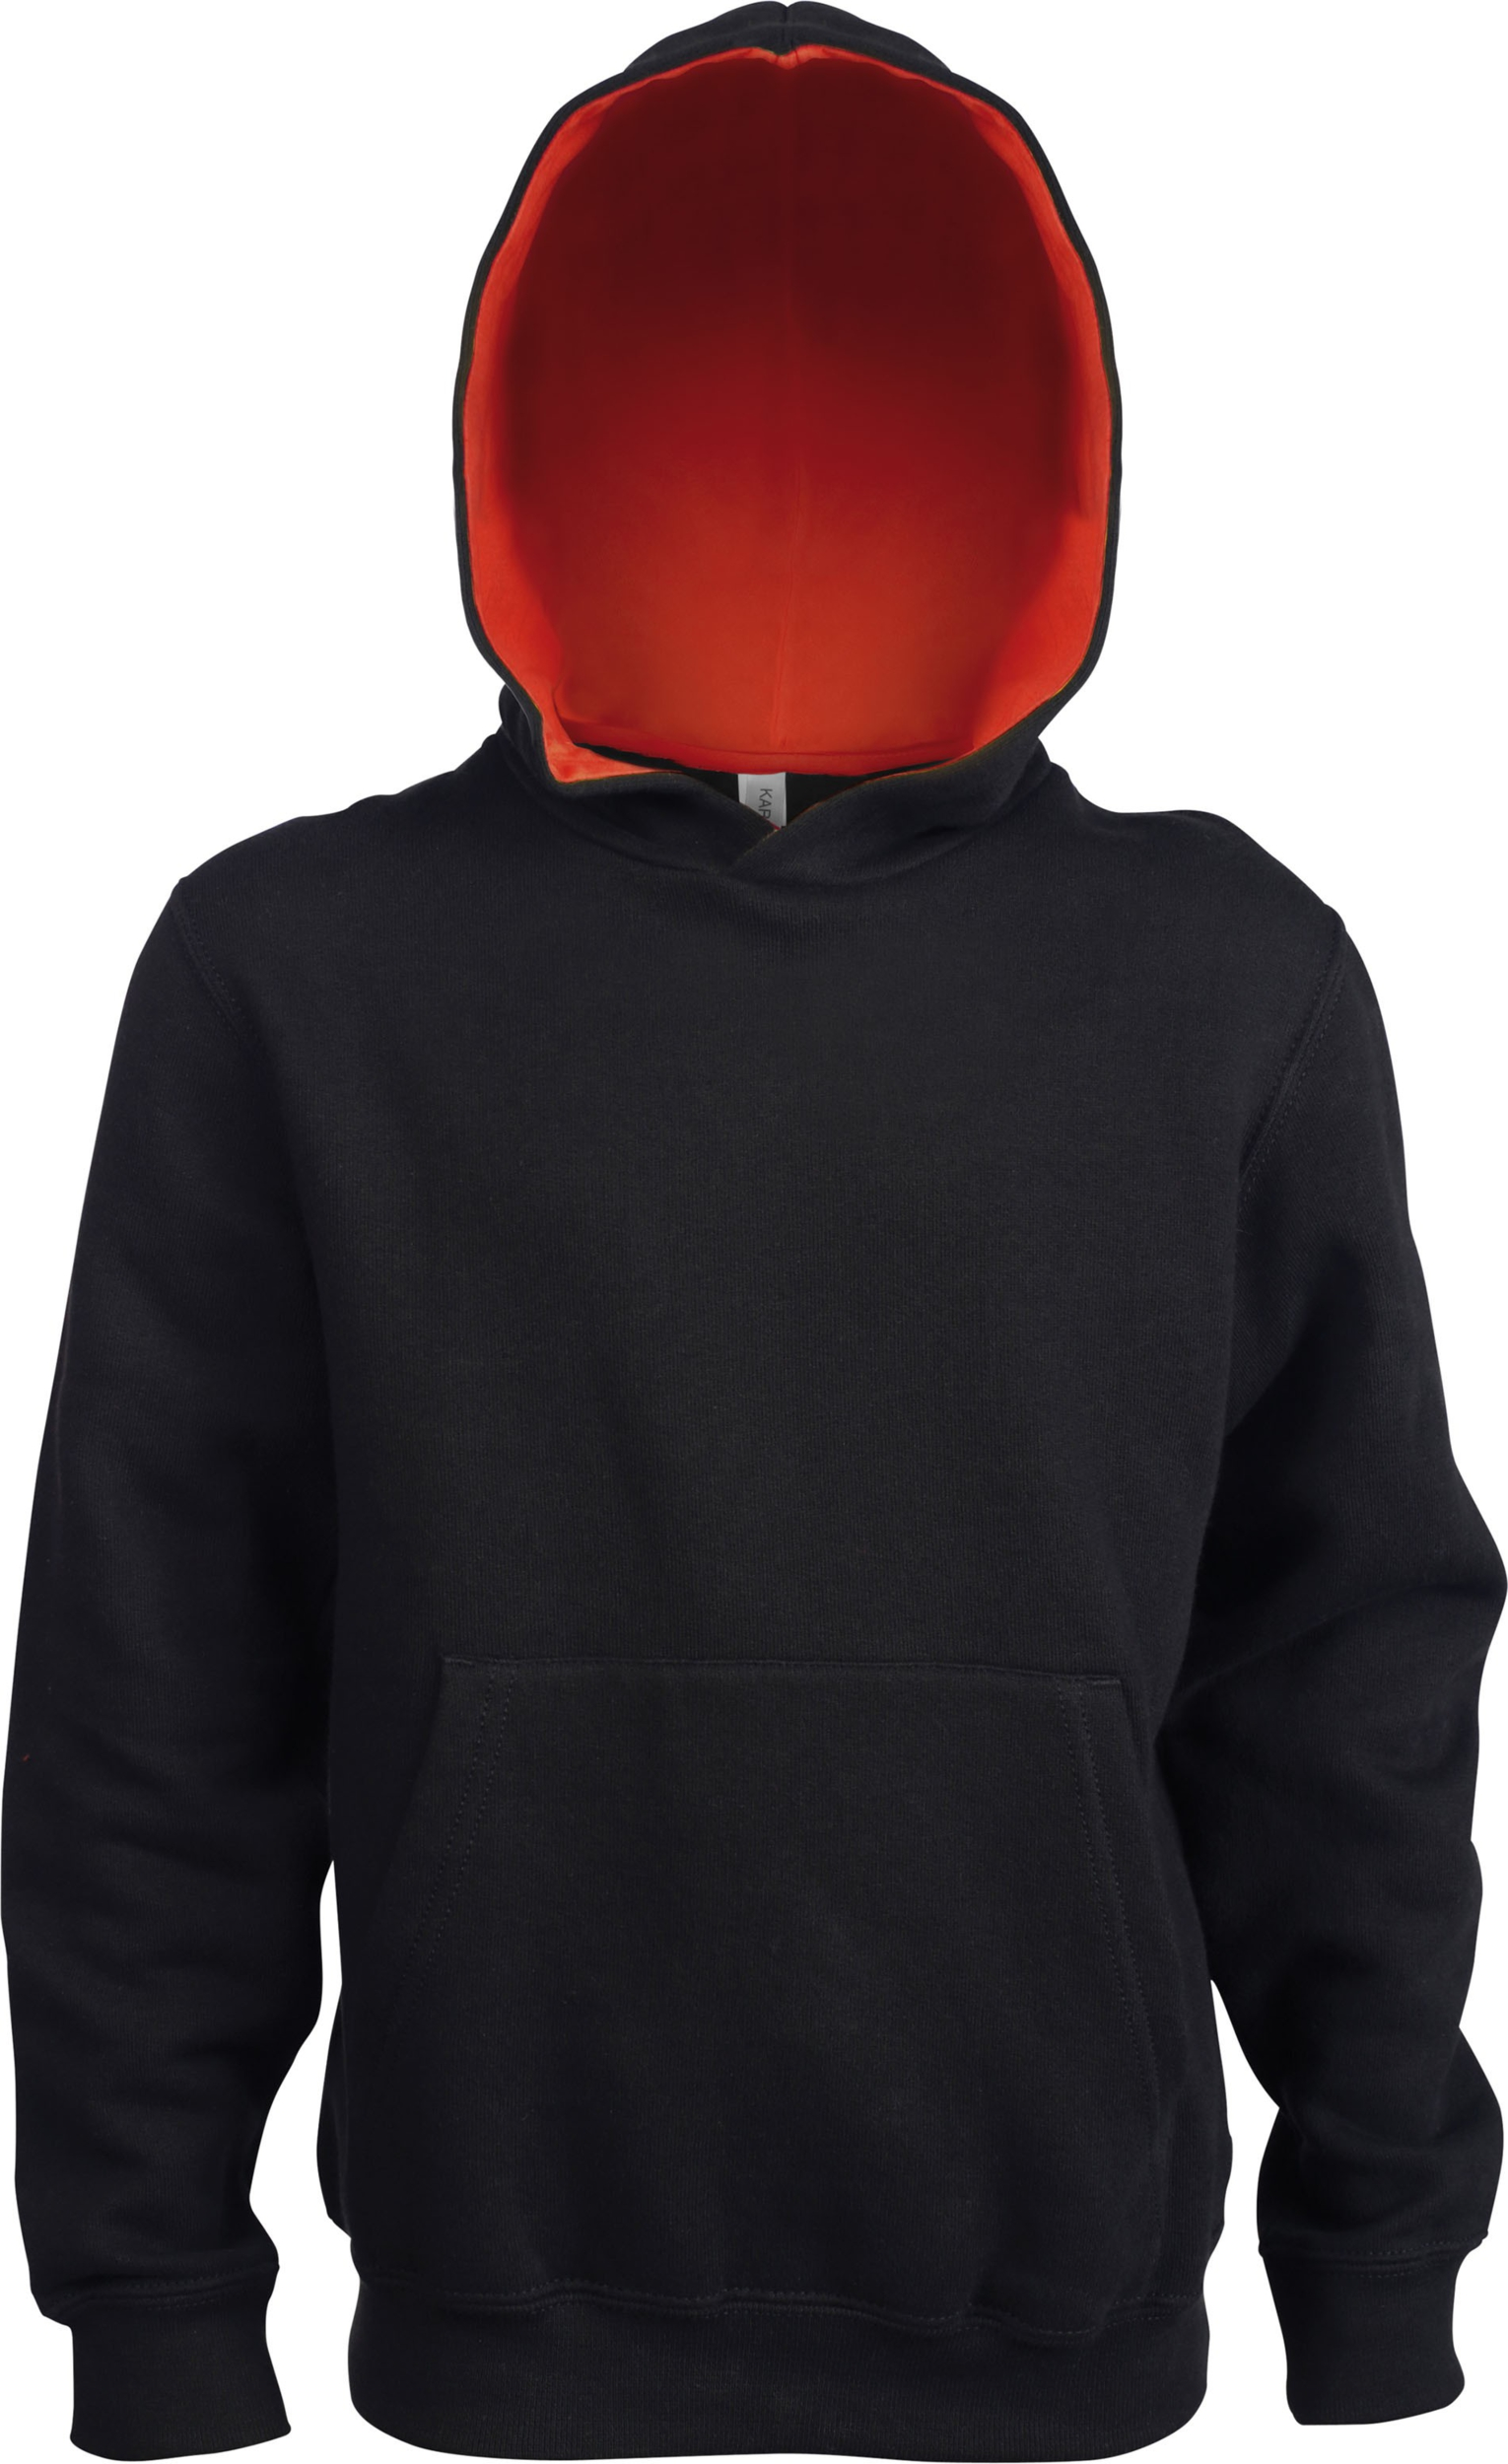 Sweat capuche contrastée Enfant Kariban